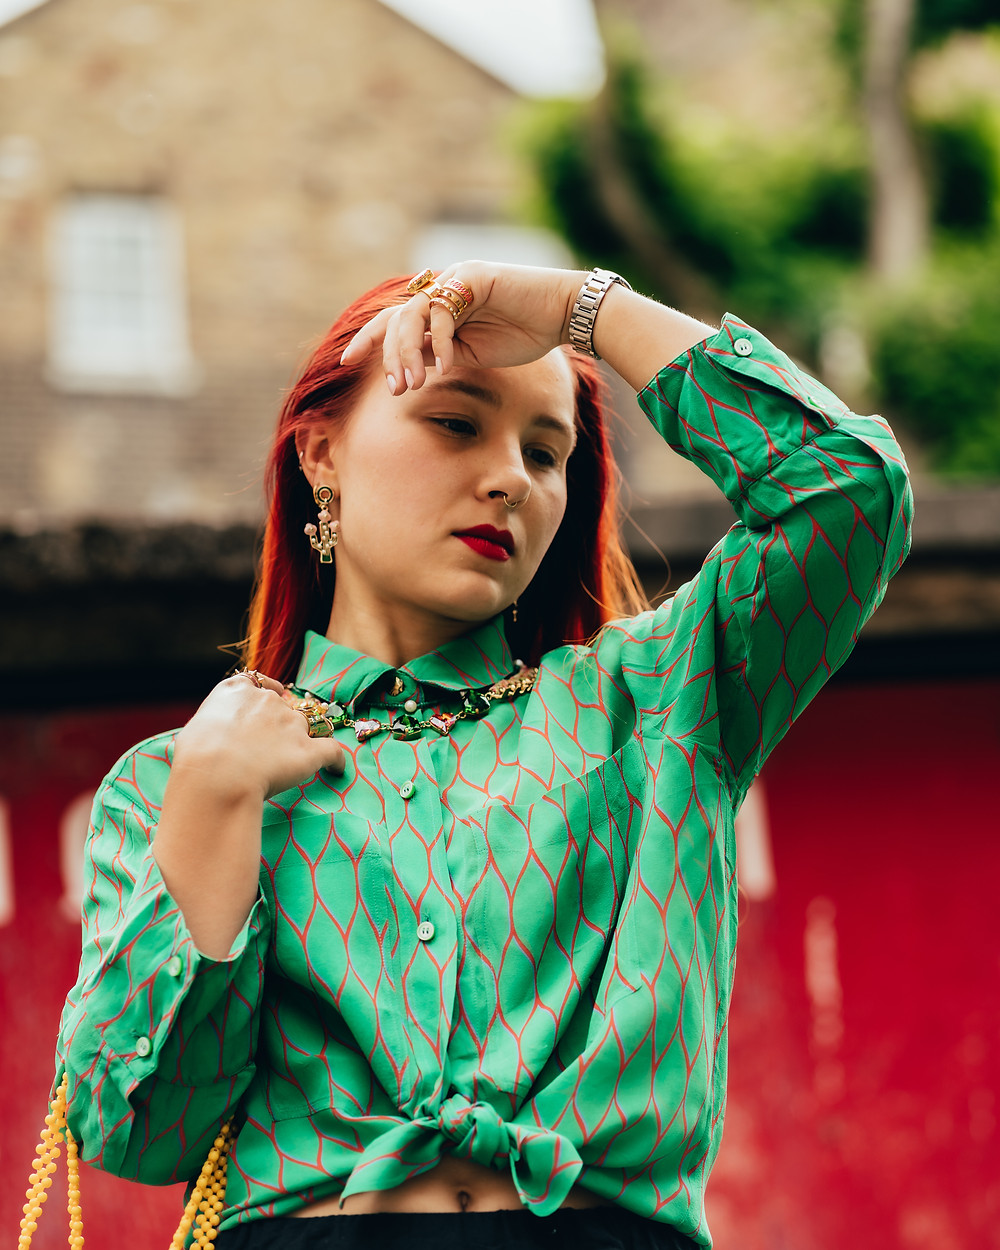 Red head woman in a green shirt holding her hand to her forehead looking down.